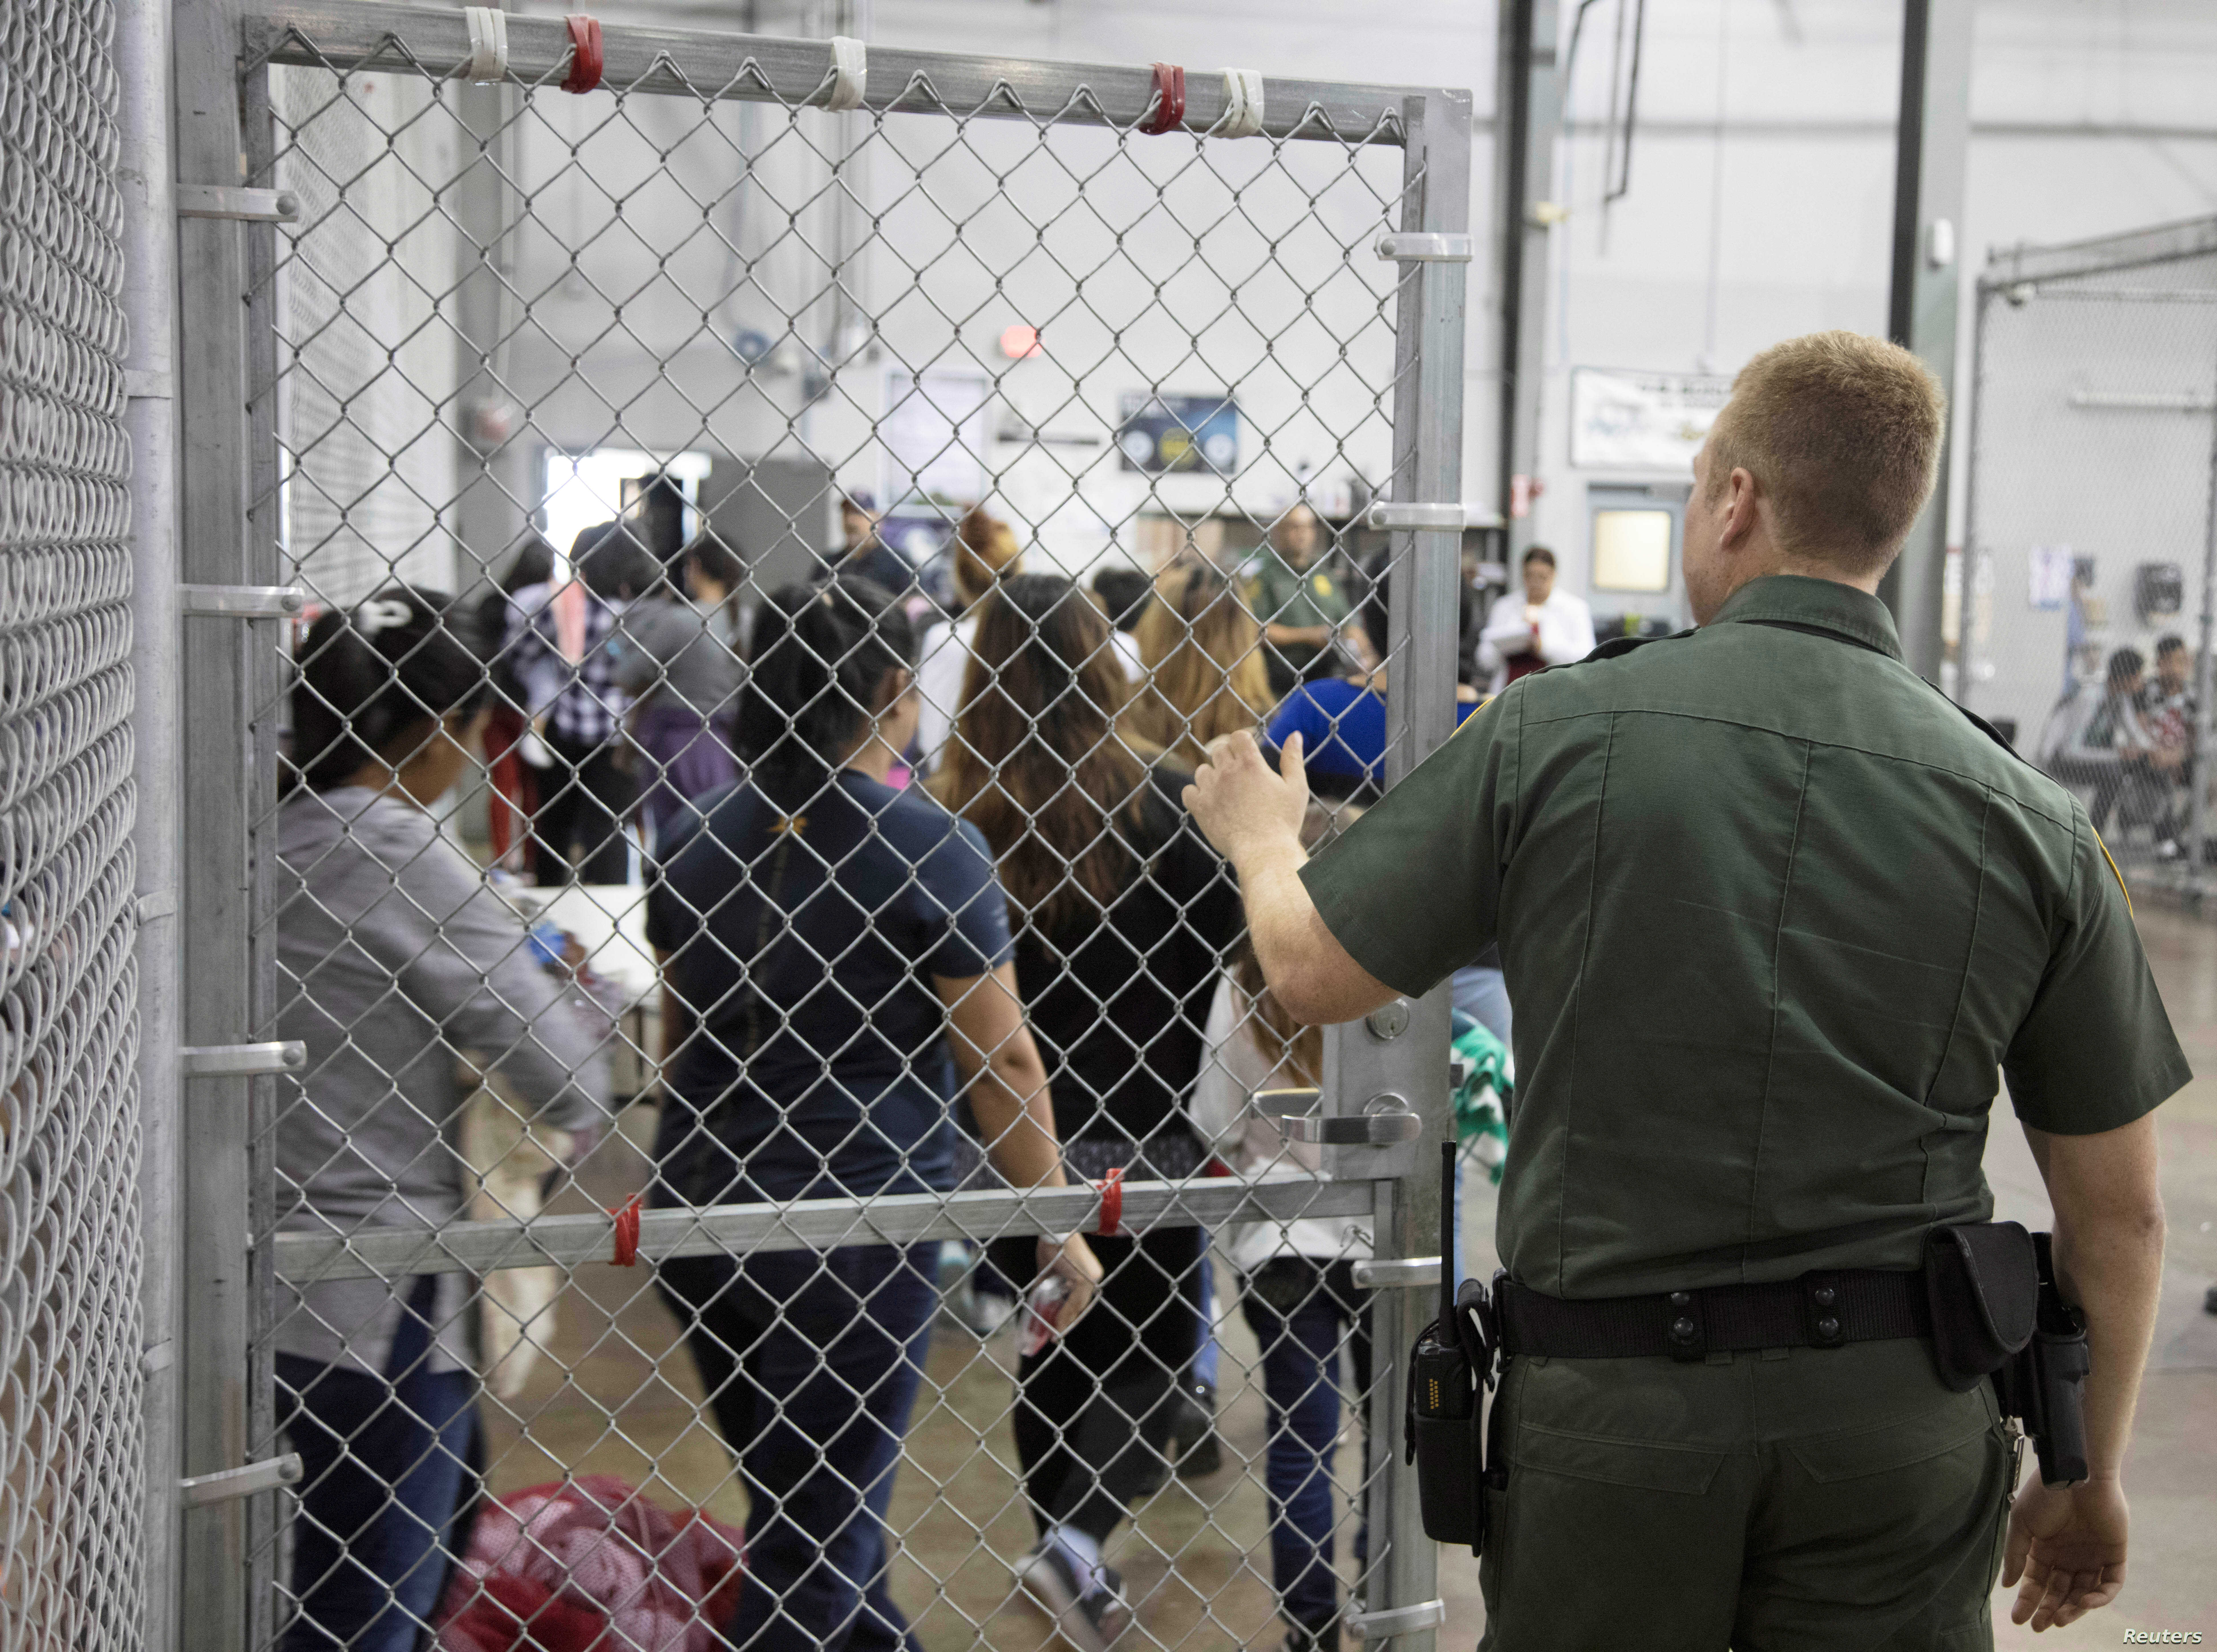 A view of inside U.S. Customs and Border Protection (CBP) detention facility shows detainees inside fenced areas at Rio Grande Valley Centralized Processing Center in Rio Grande City, Texas, June 17, 2018.